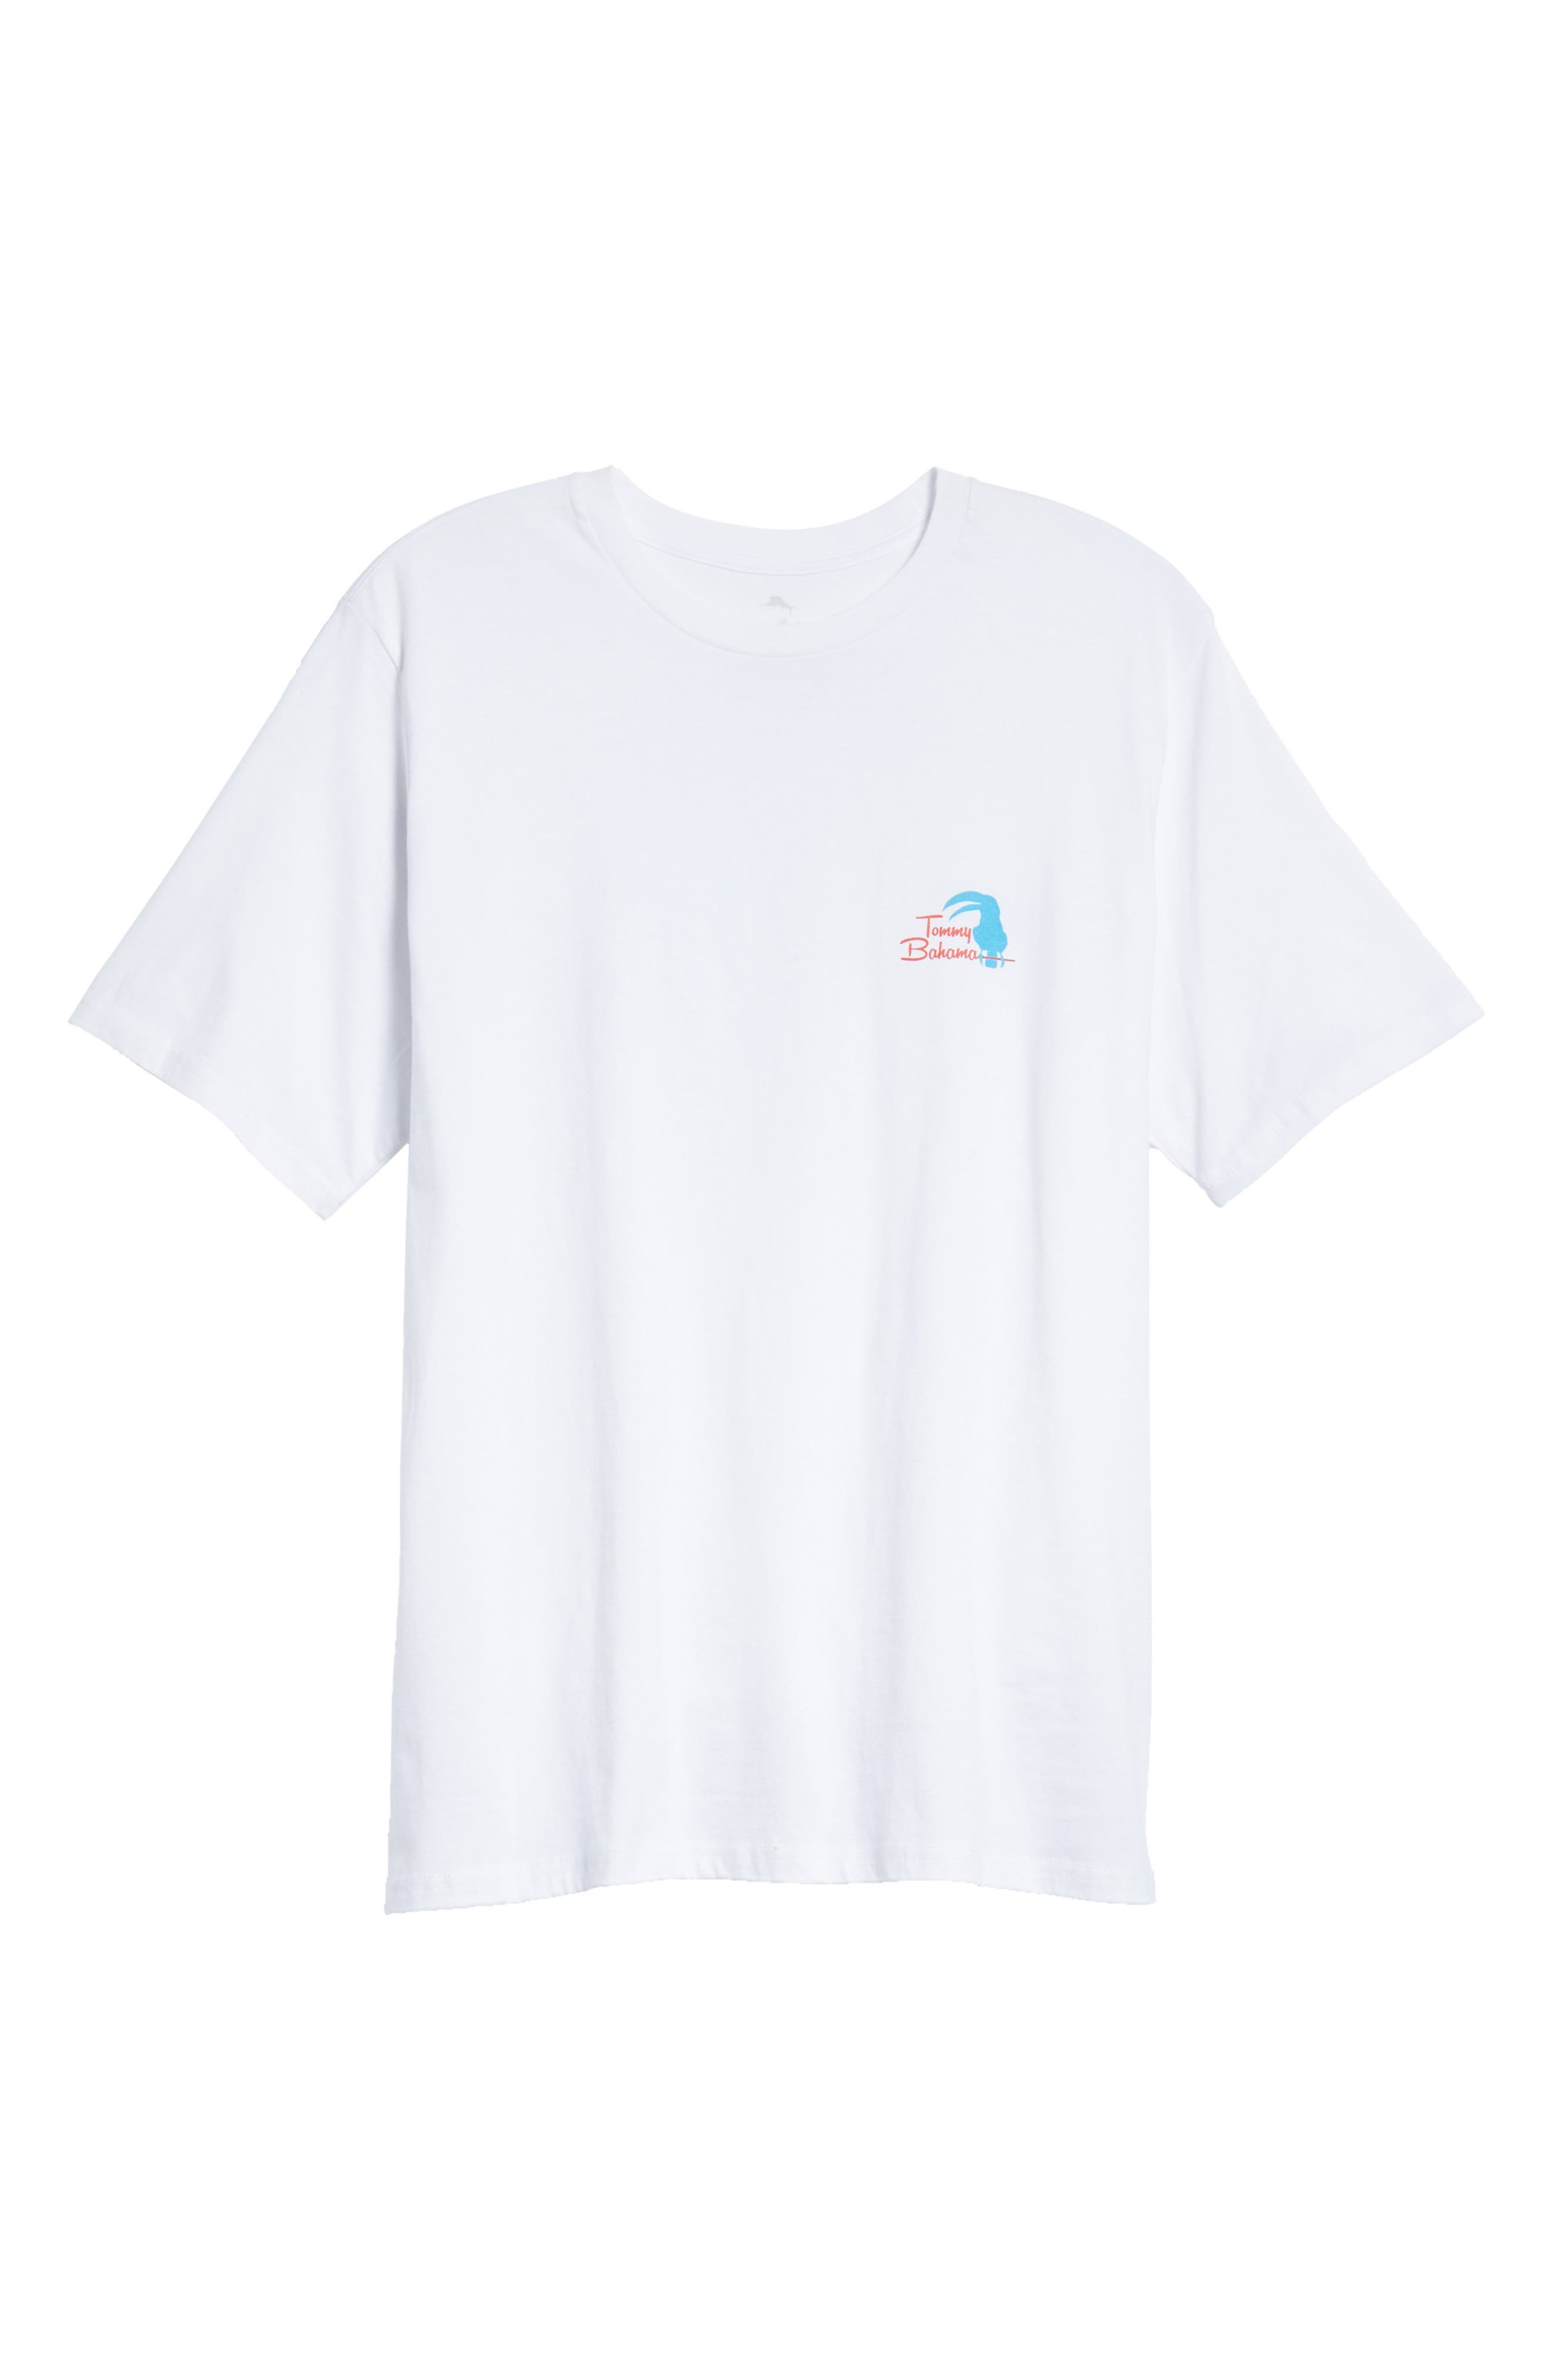 Let the Birds Do the Tweeting T-Shirt,                             Alternate thumbnail 6, color,                             WHITE